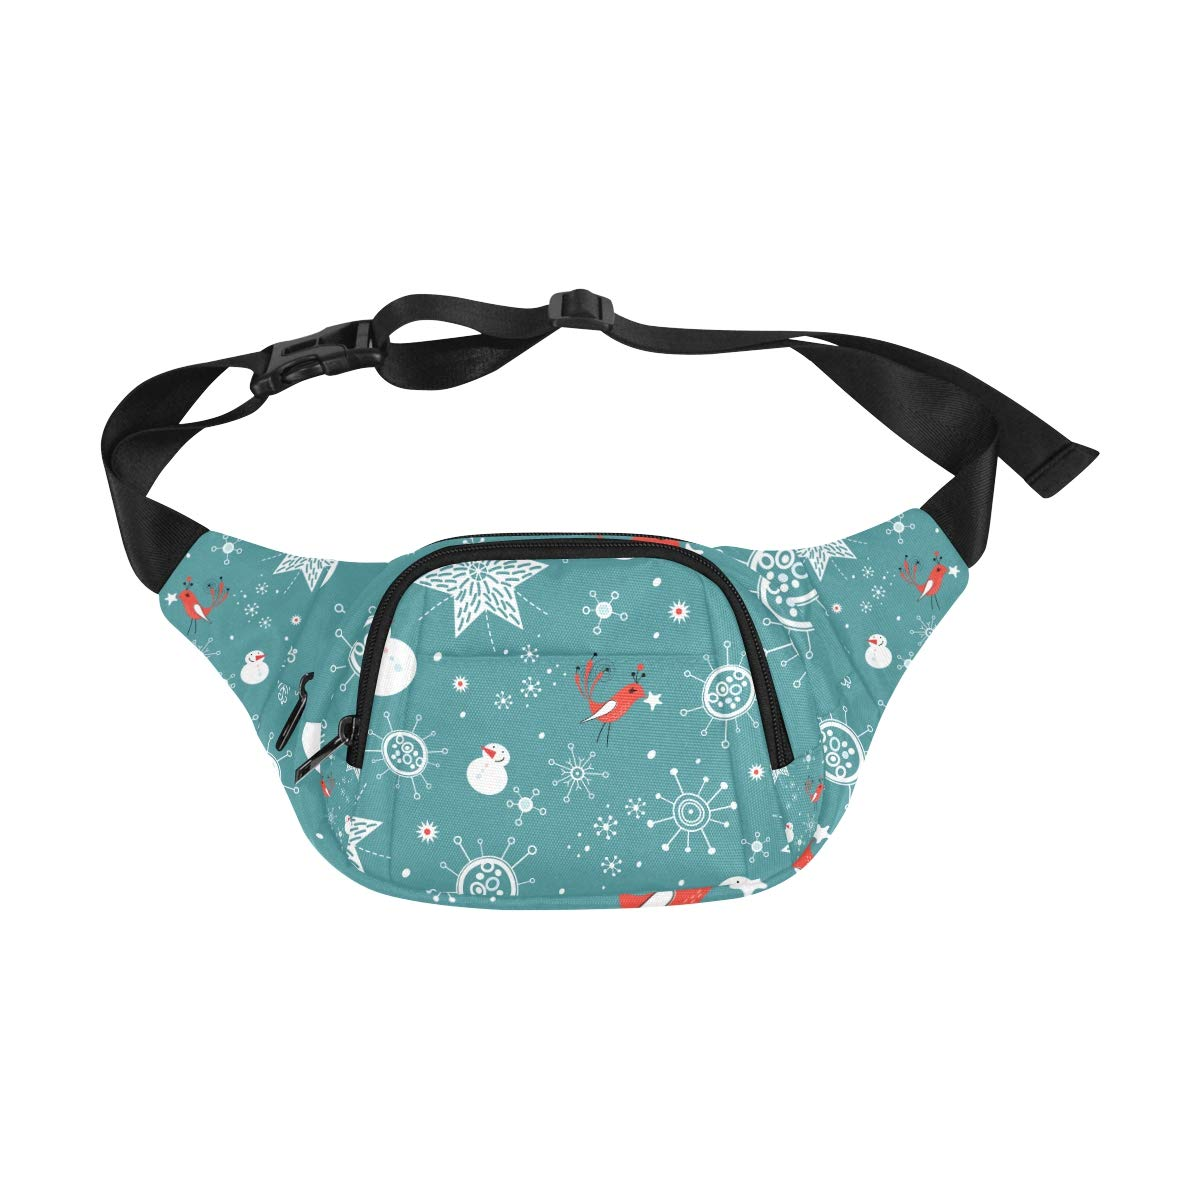 Christmas Snowflakes And Snowman Fenny Packs Waist Bags Adjustable Belt Waterproof Nylon Travel Running Sport Vacation Party For Men Women Boys Girls Kids